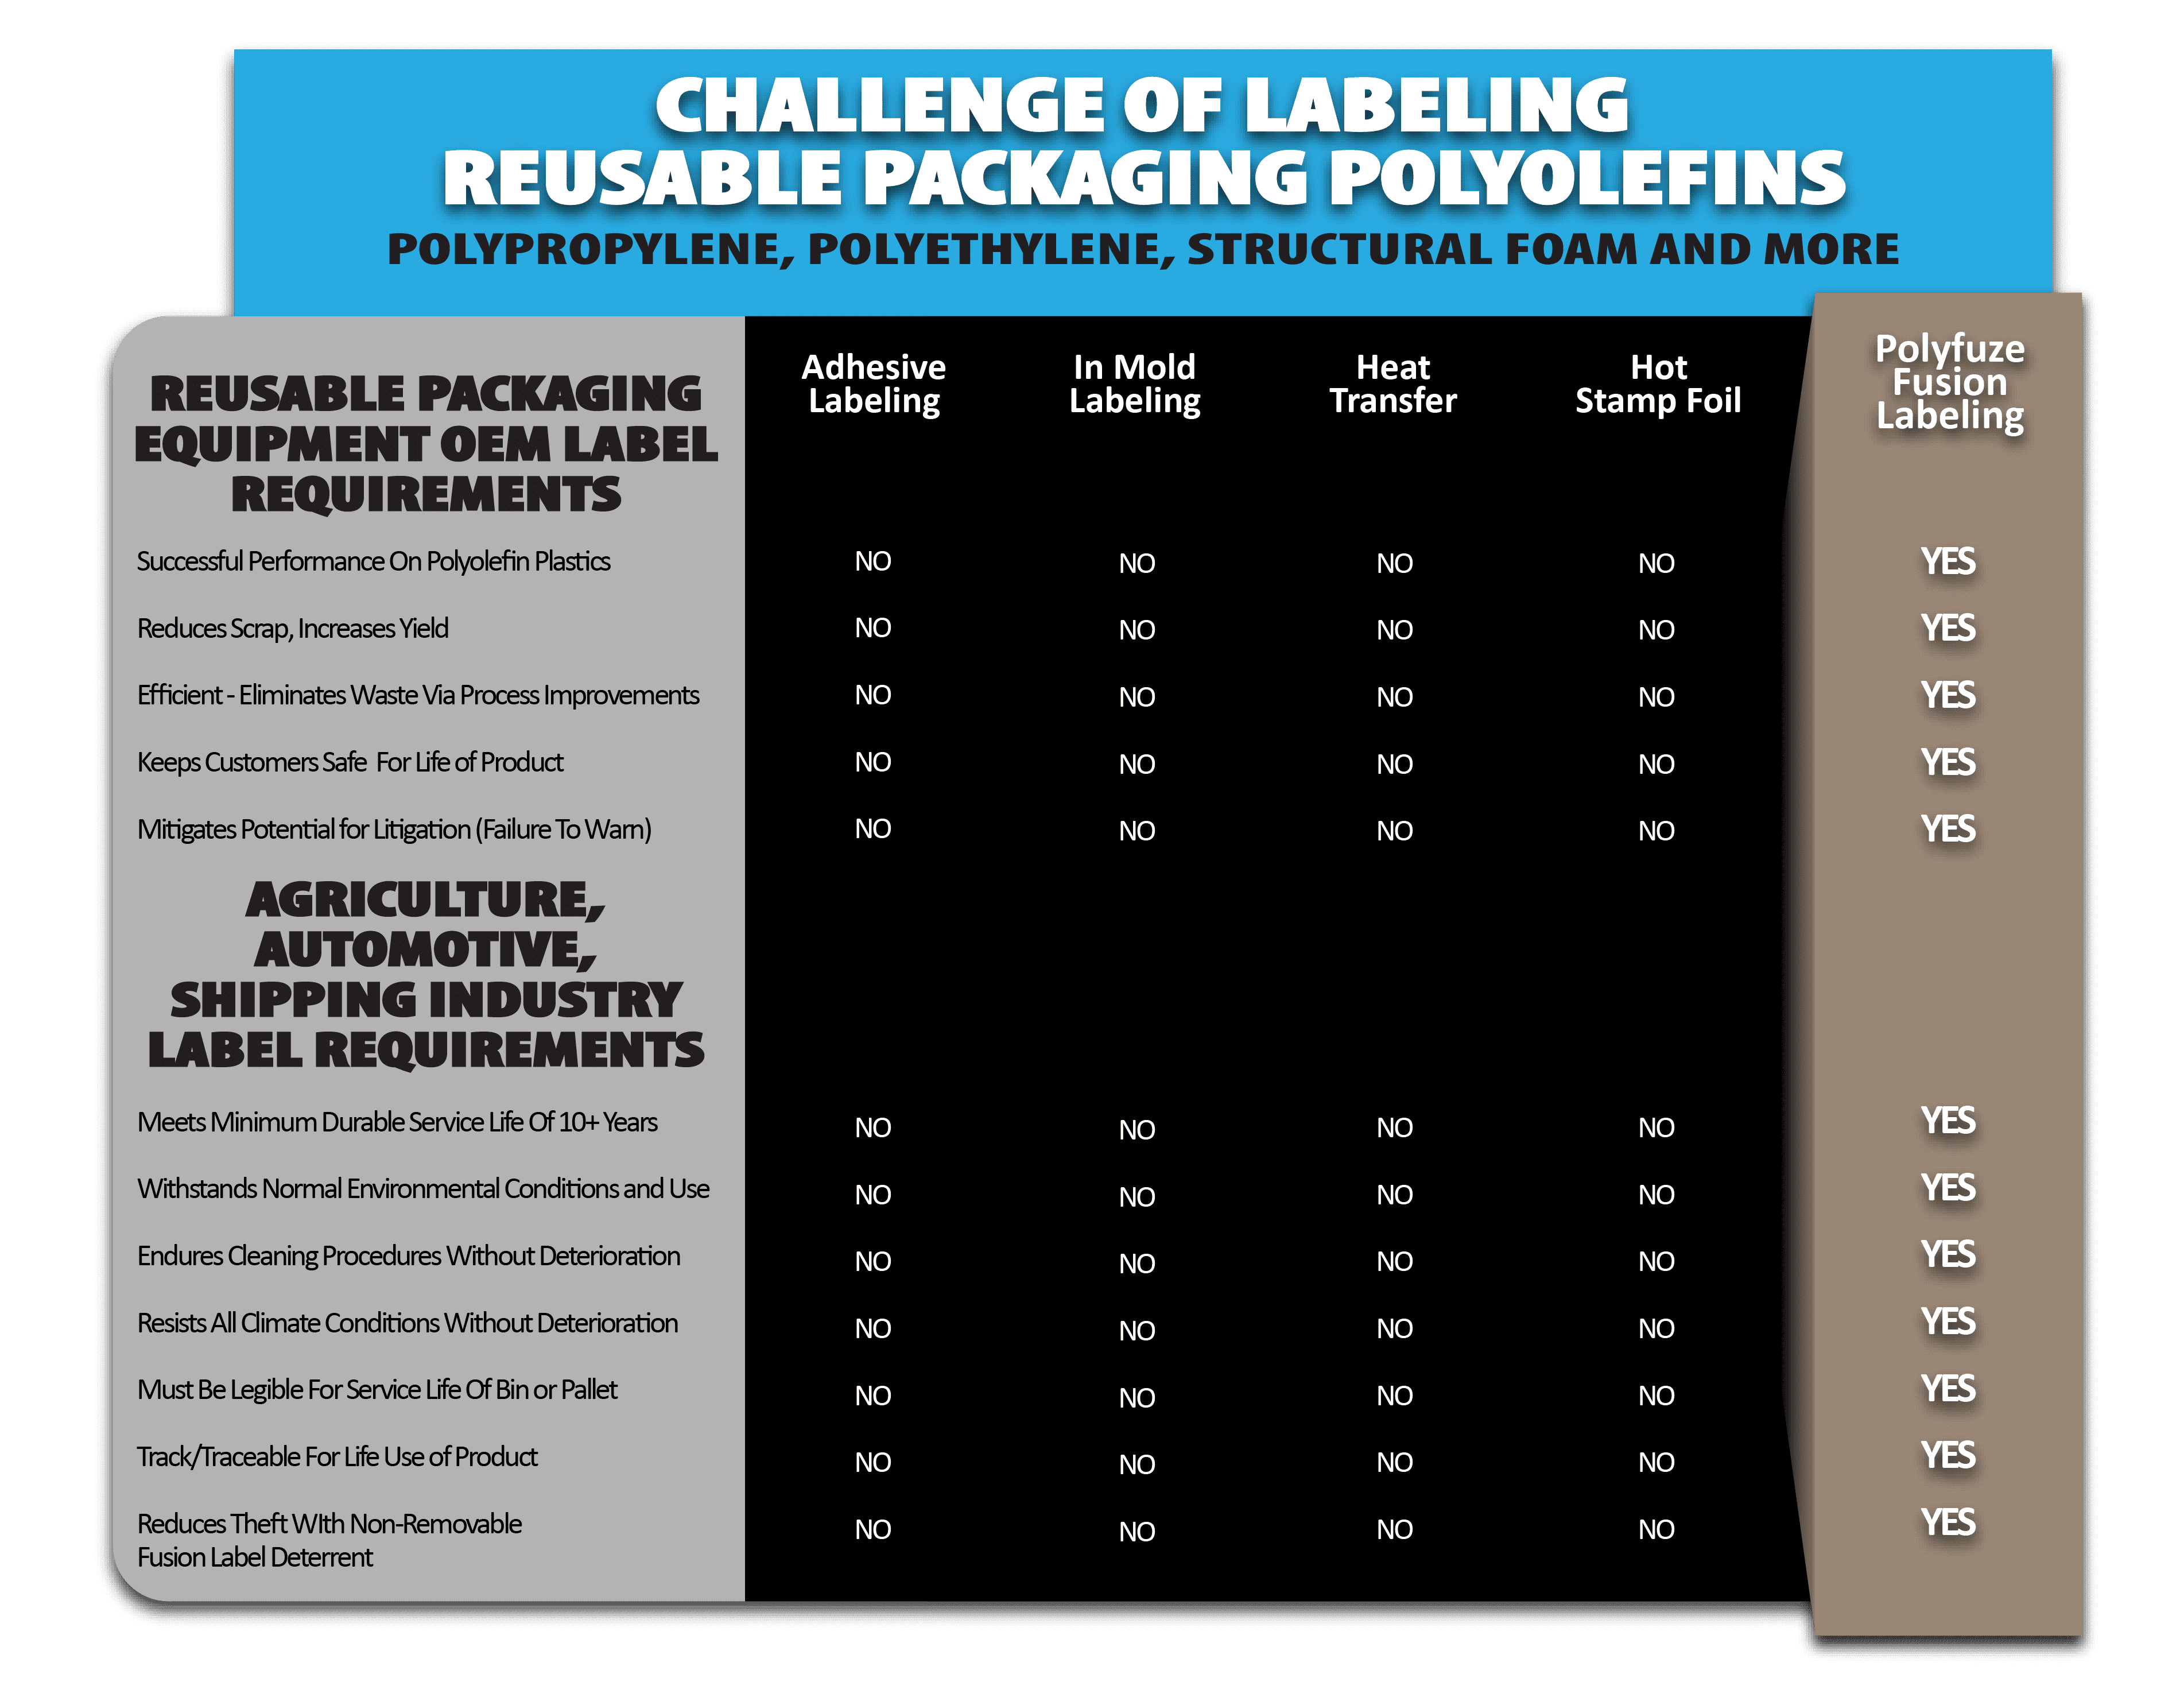 Polyfuze Fusion Labeling For Reusable Packaging & Commercial Polymers